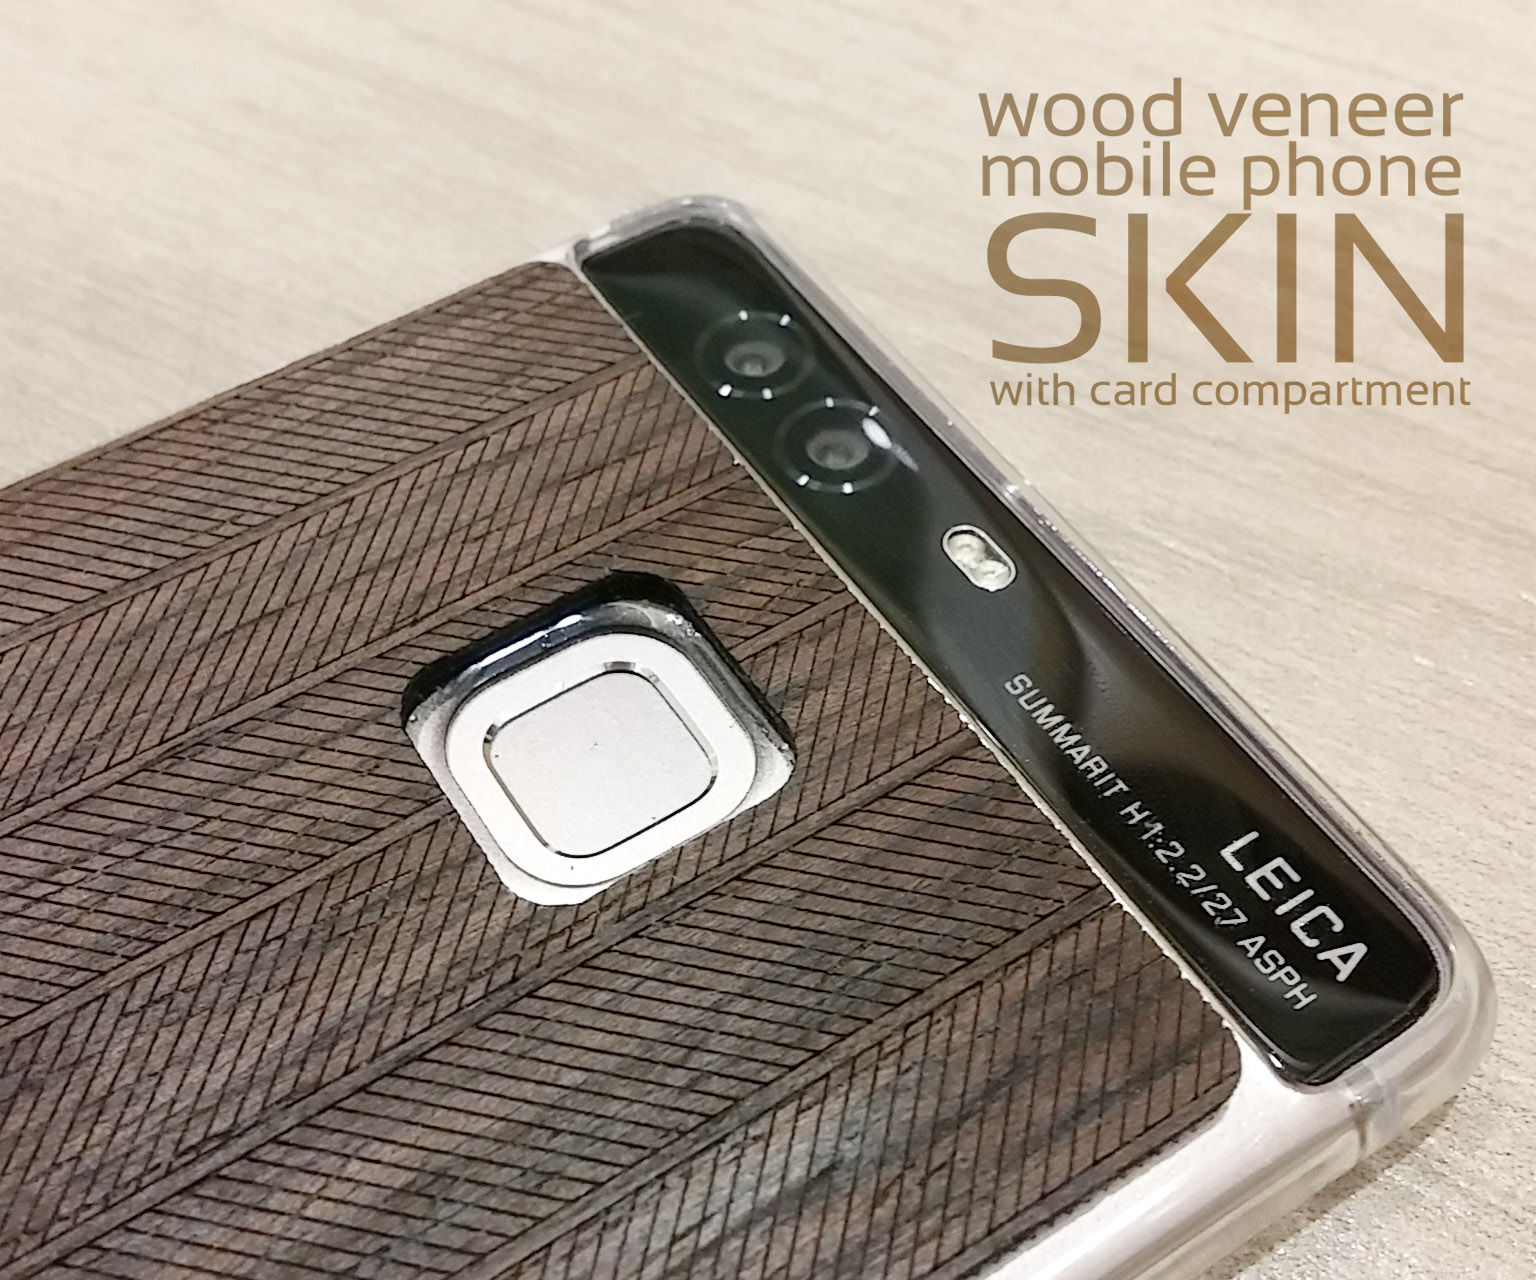 Wood Veneer Mobile Phone Skin With Card Compartment